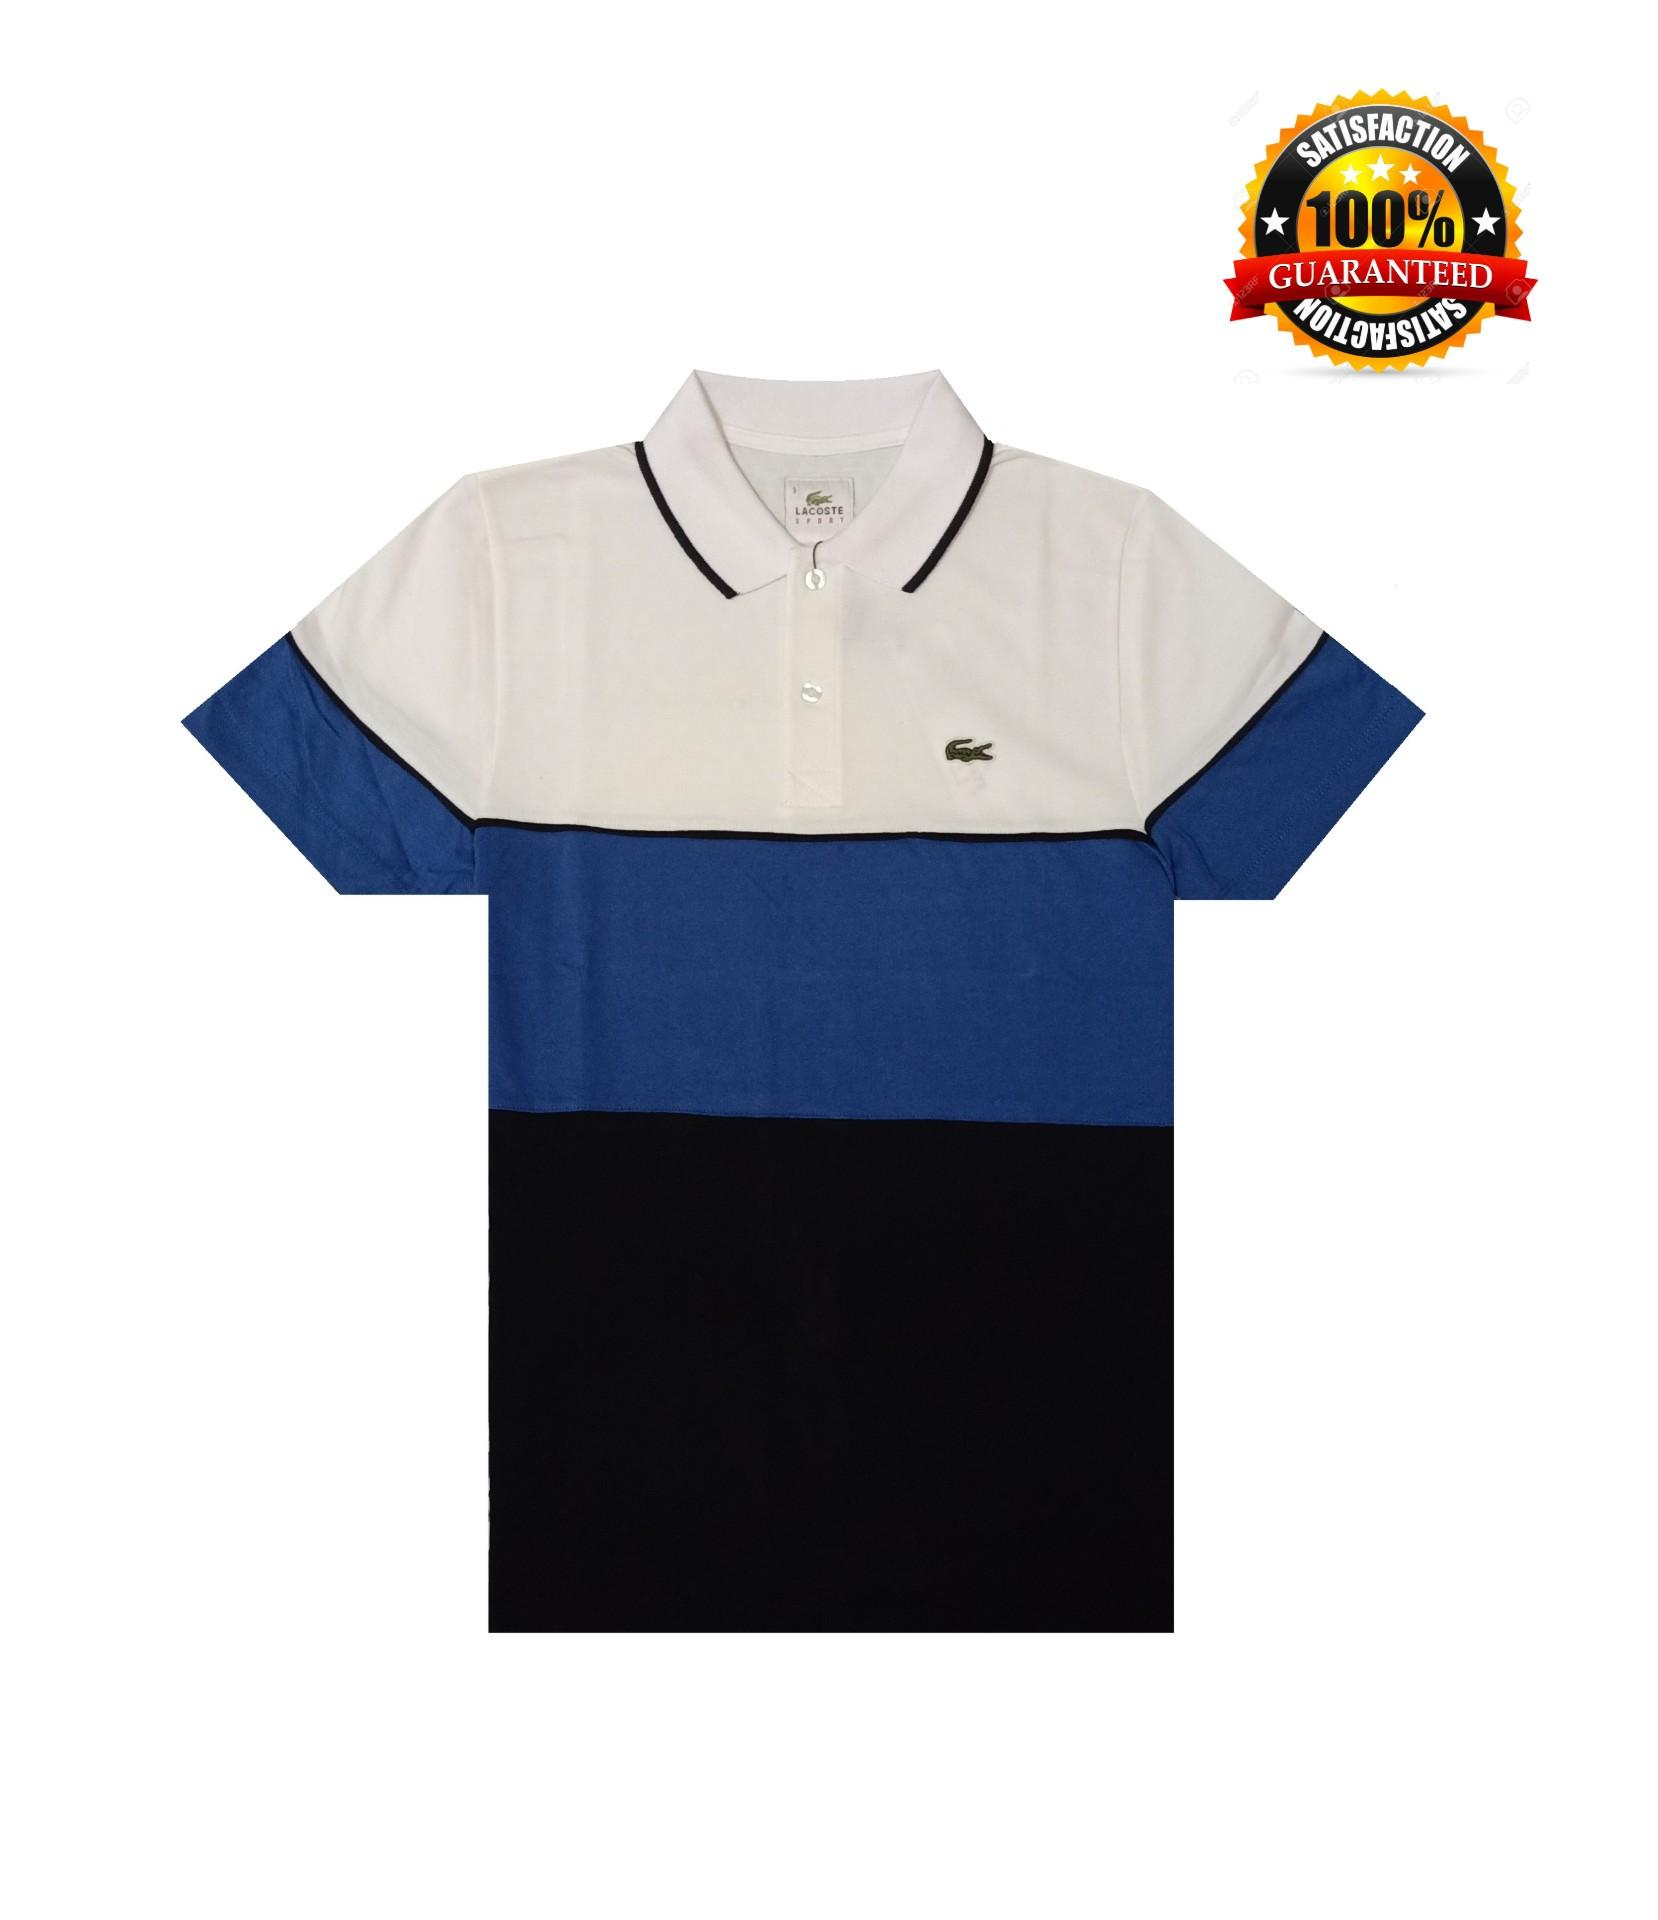 9460d418814 Lacoste Philippines - Lacoste Polo for Men for sale - prices ...